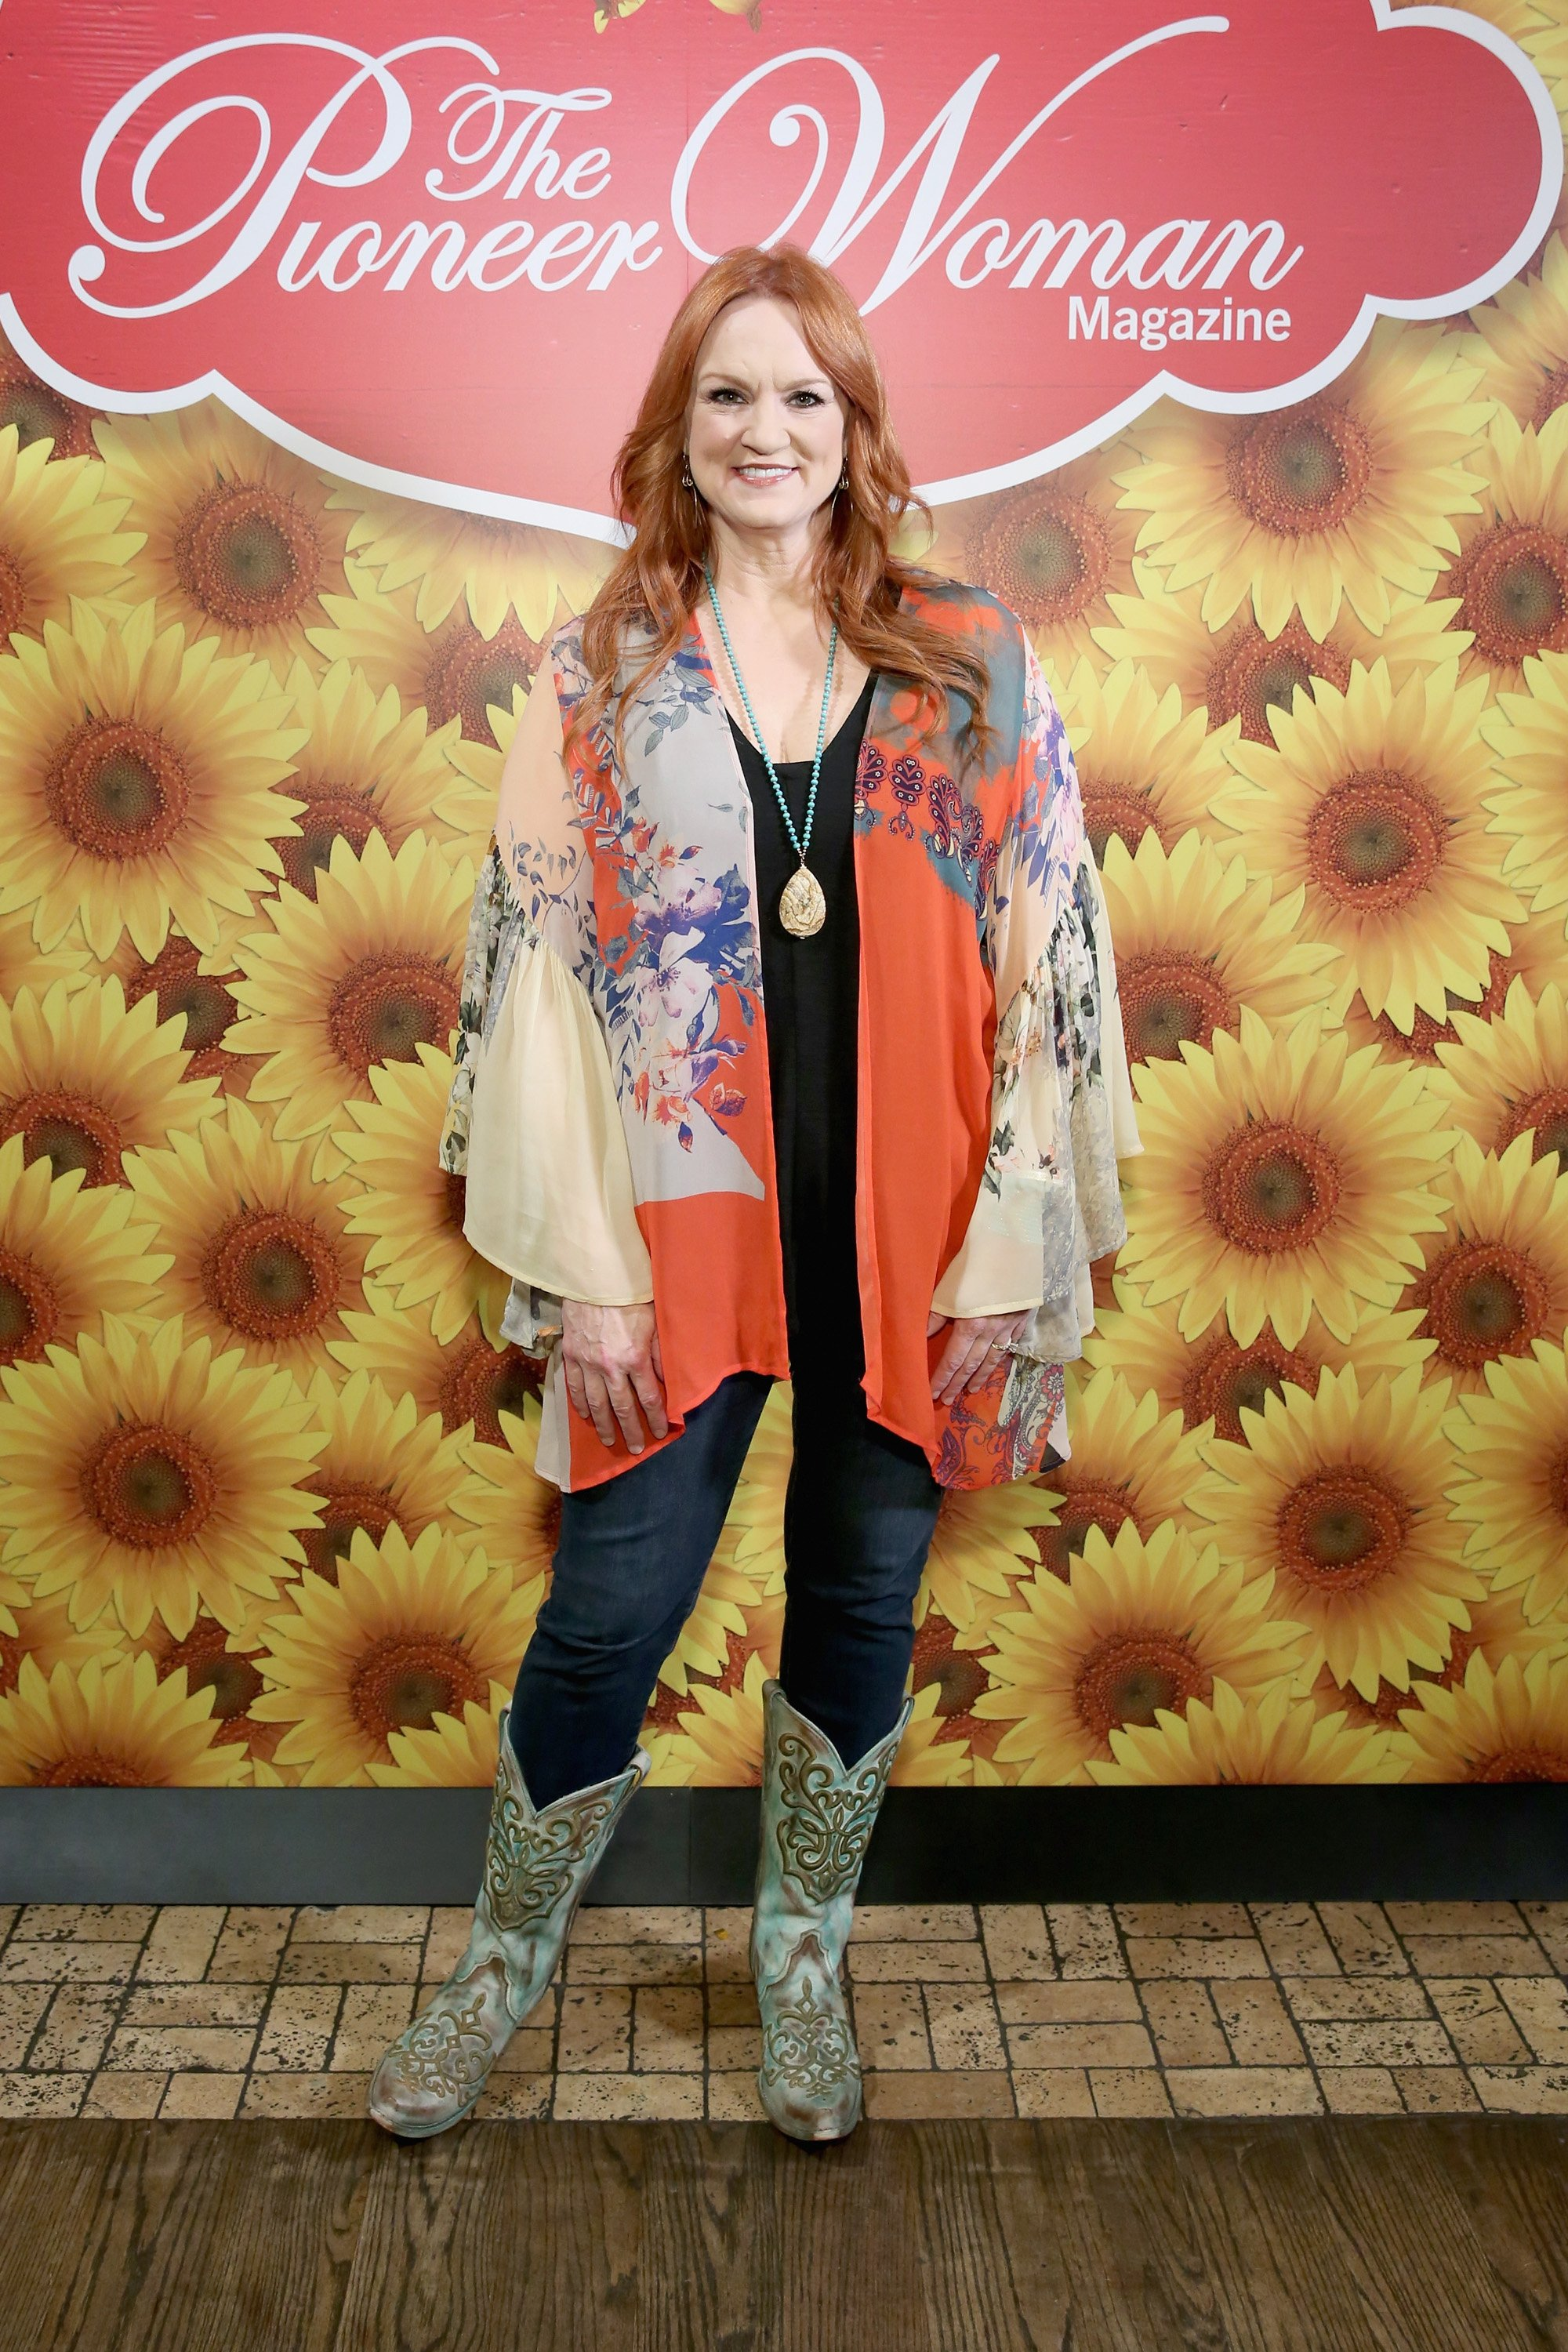 Ree Drummond attends The Pioneer Woman Magazine Celebration with Ree Drummond on June 6, 2017, in New York City. | Source: Getty Images.